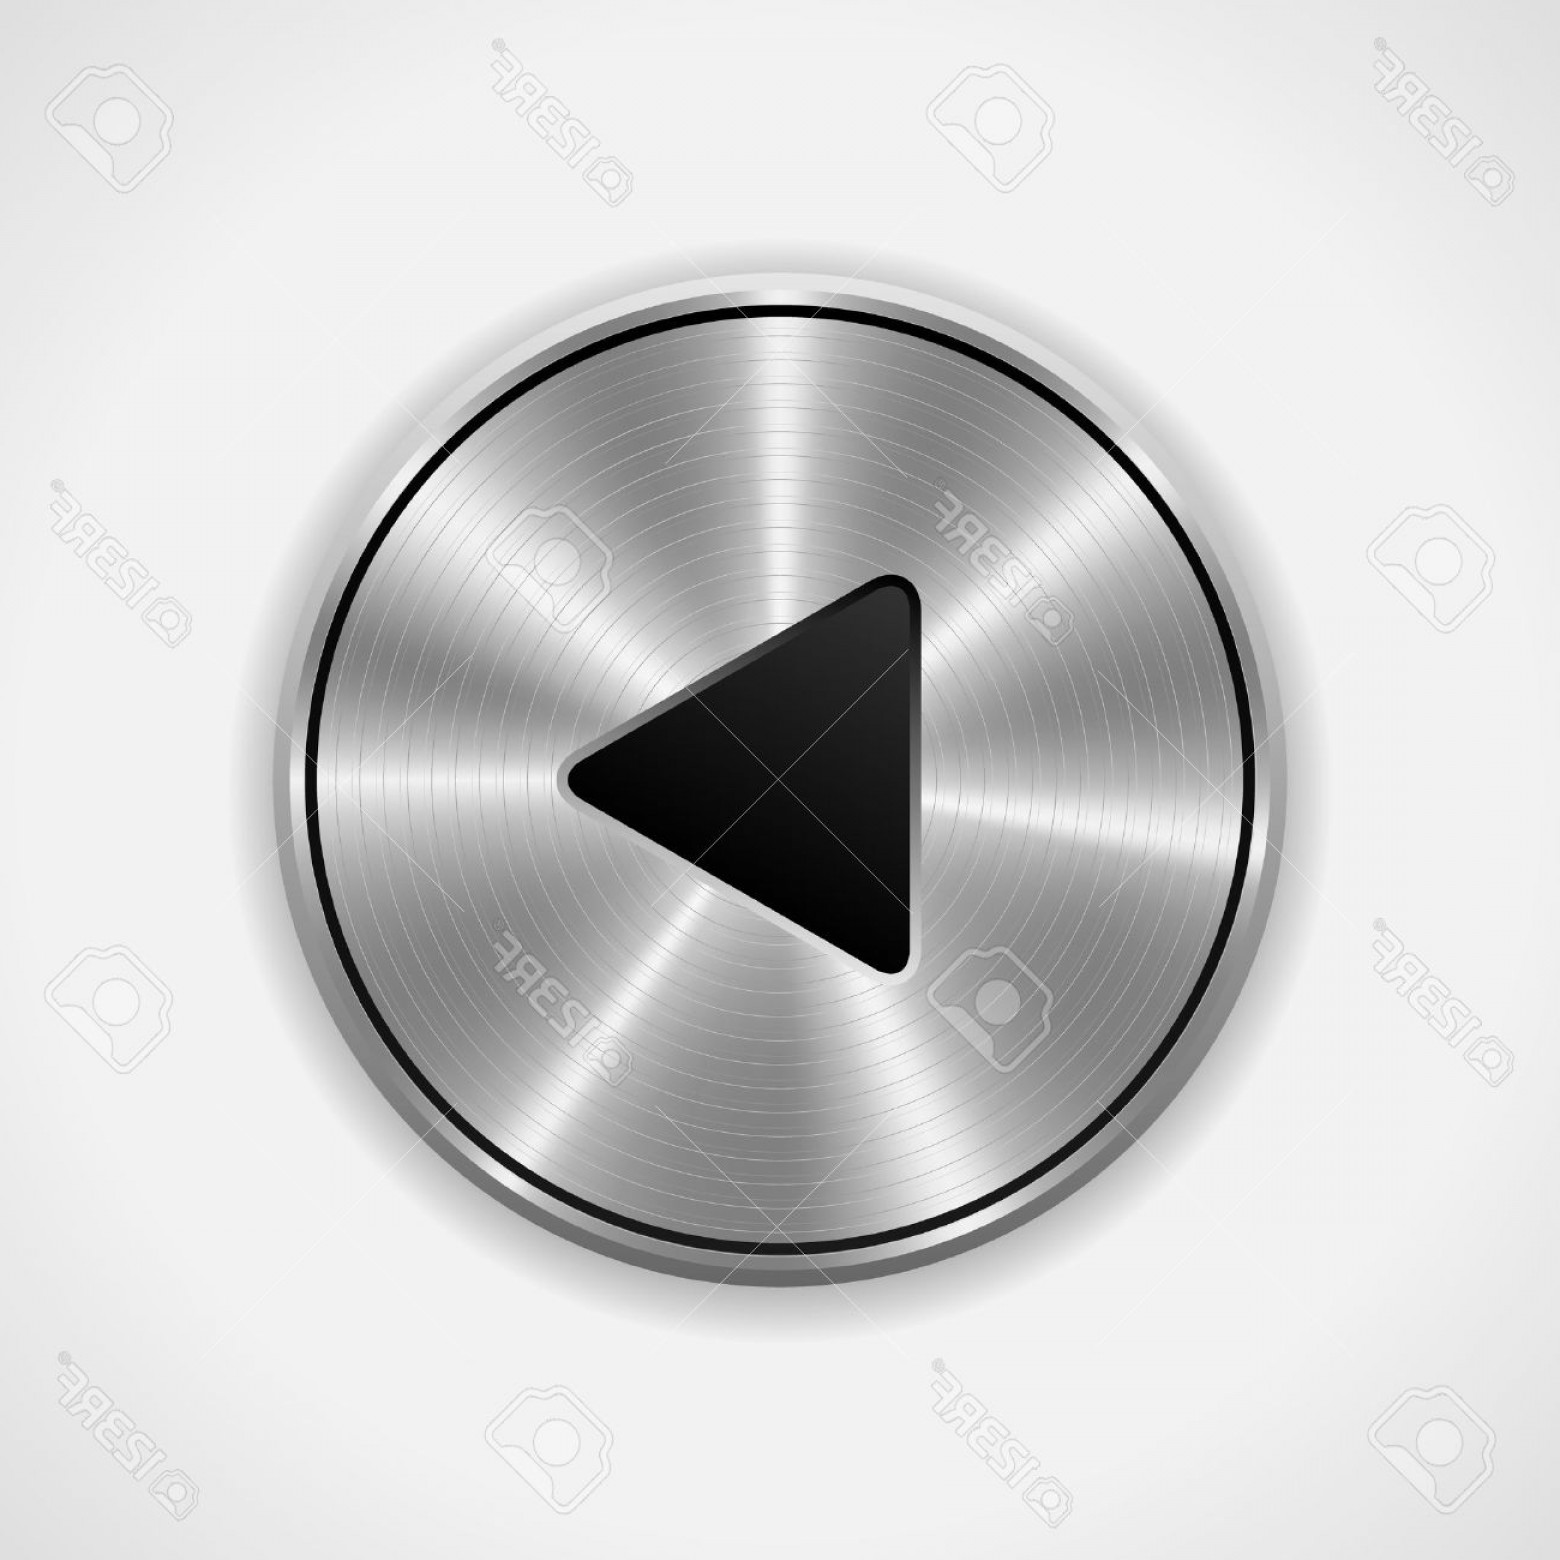 Metal Button Vector: Photorealistic Play Metal Button Vector Eps Isolated